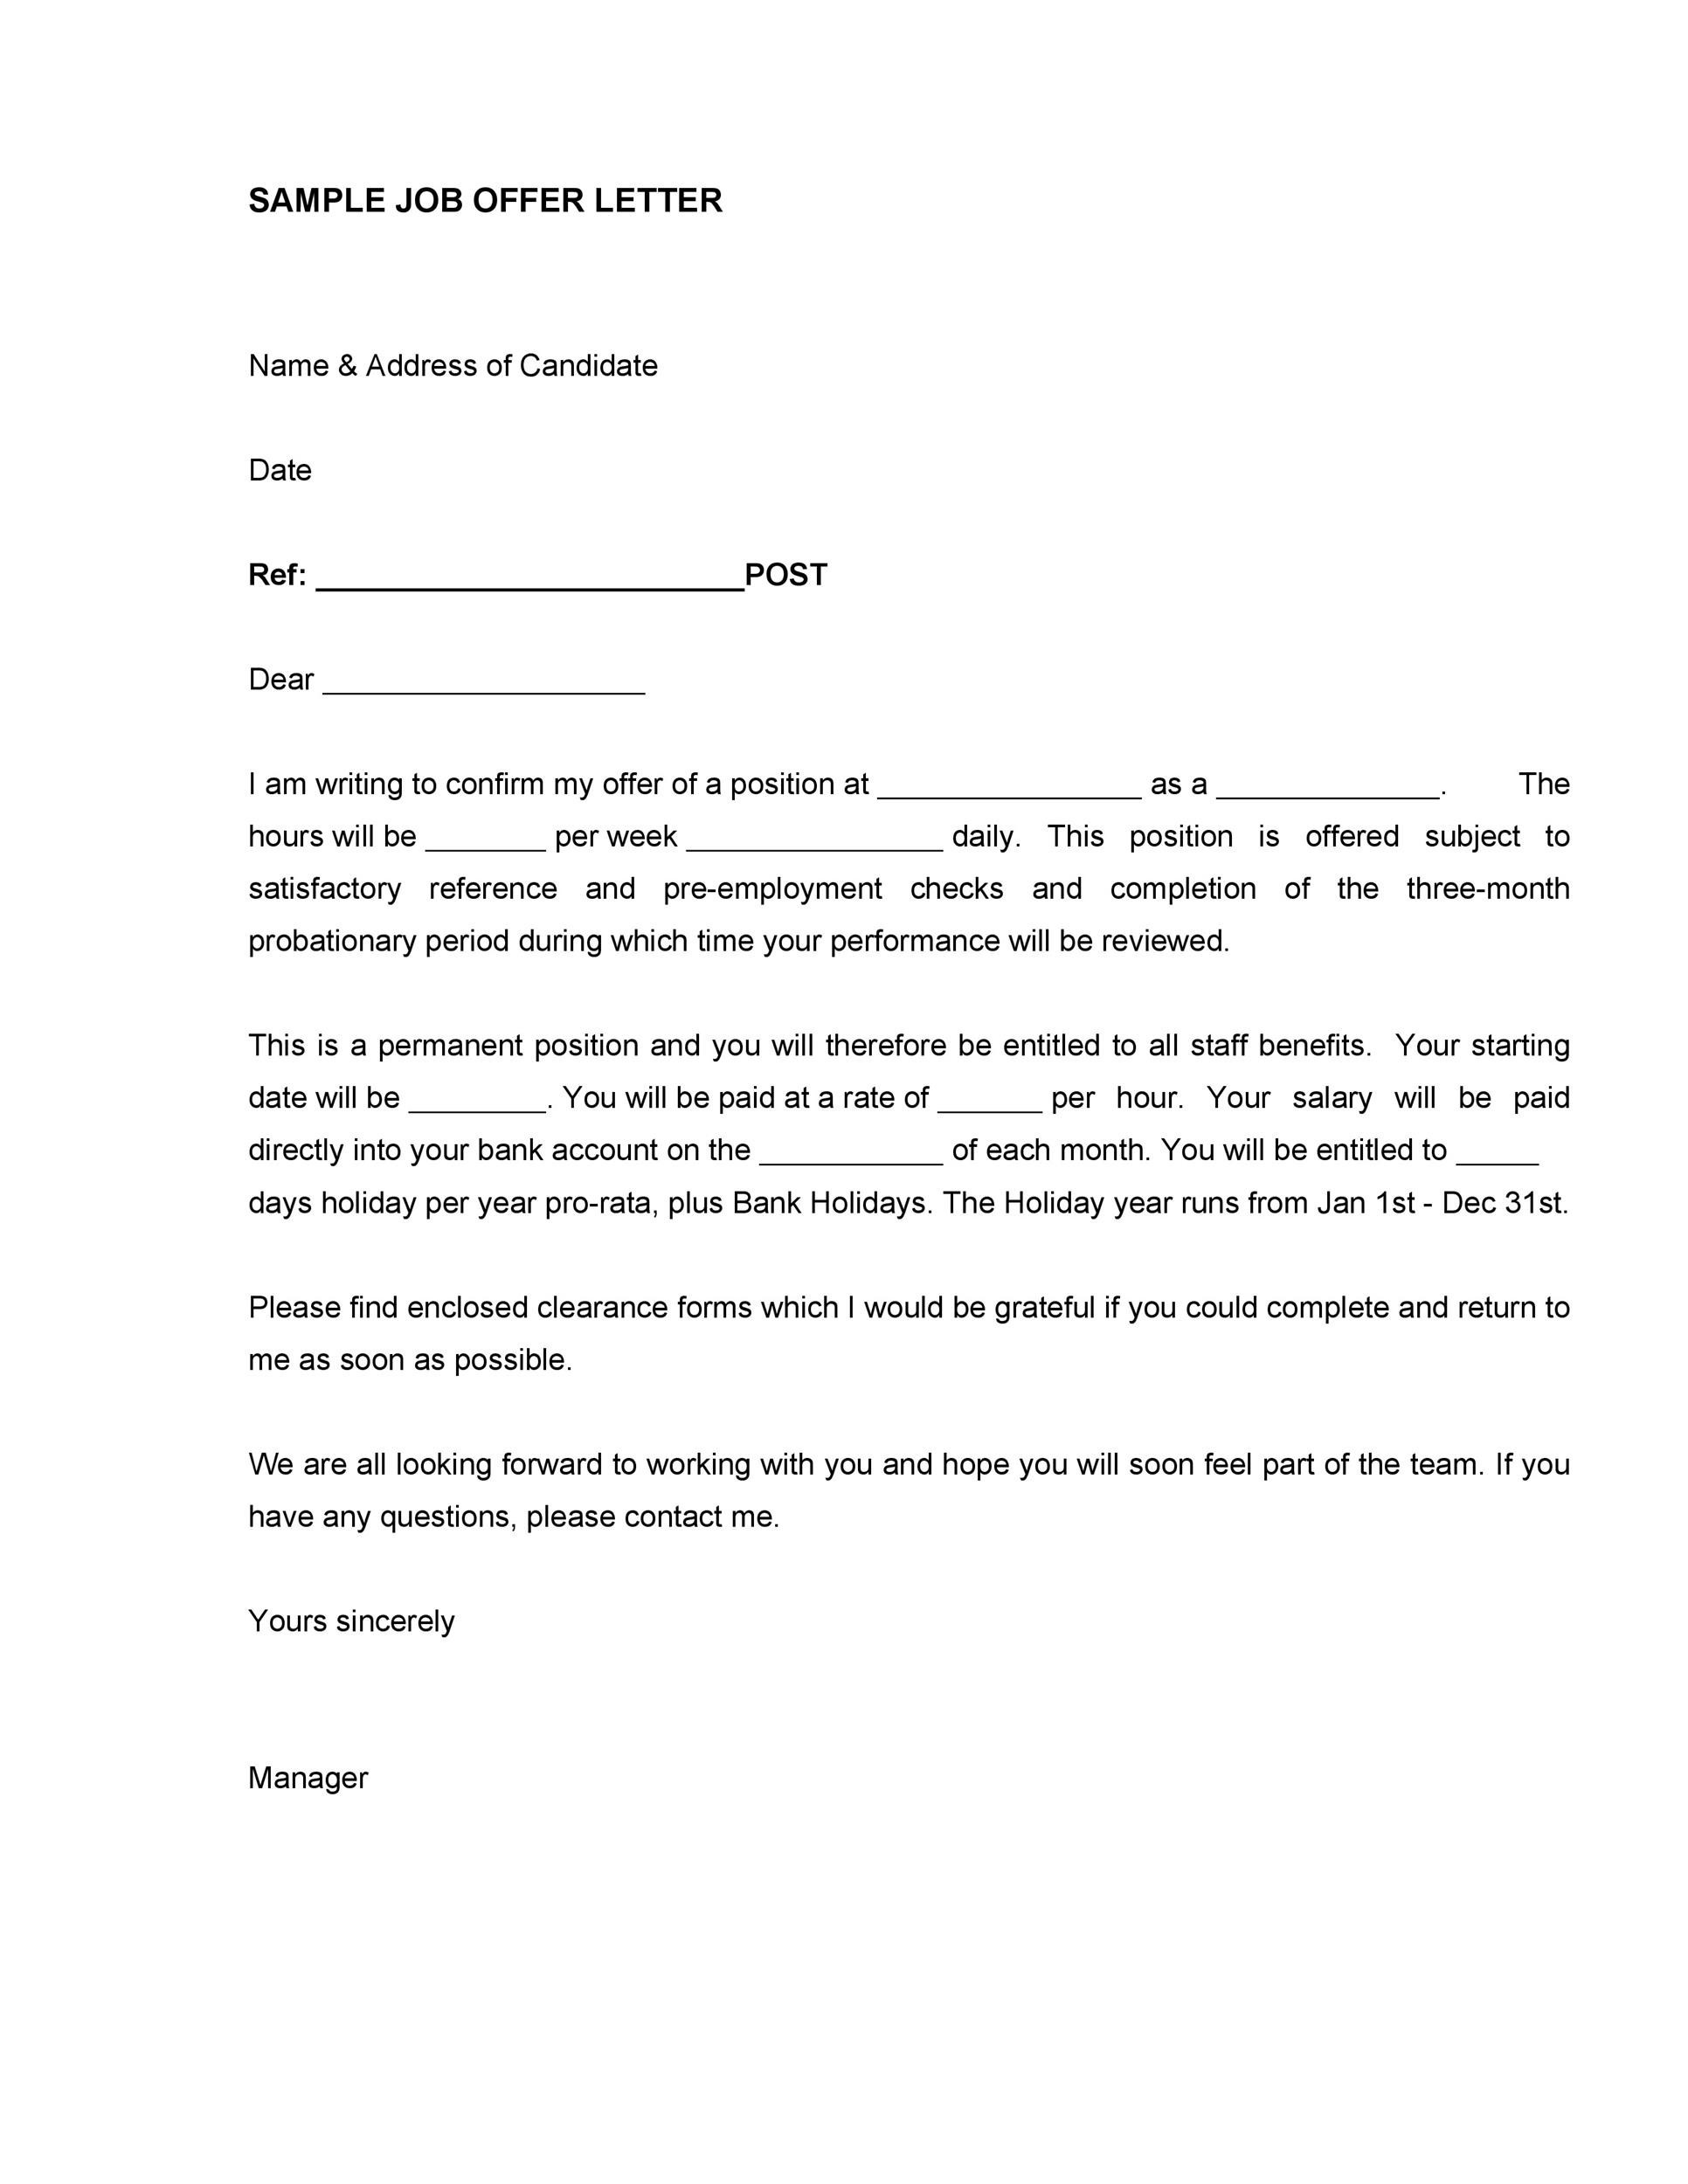 Job Offer Letter Sample Fantastic Offer Letter Templates Employment